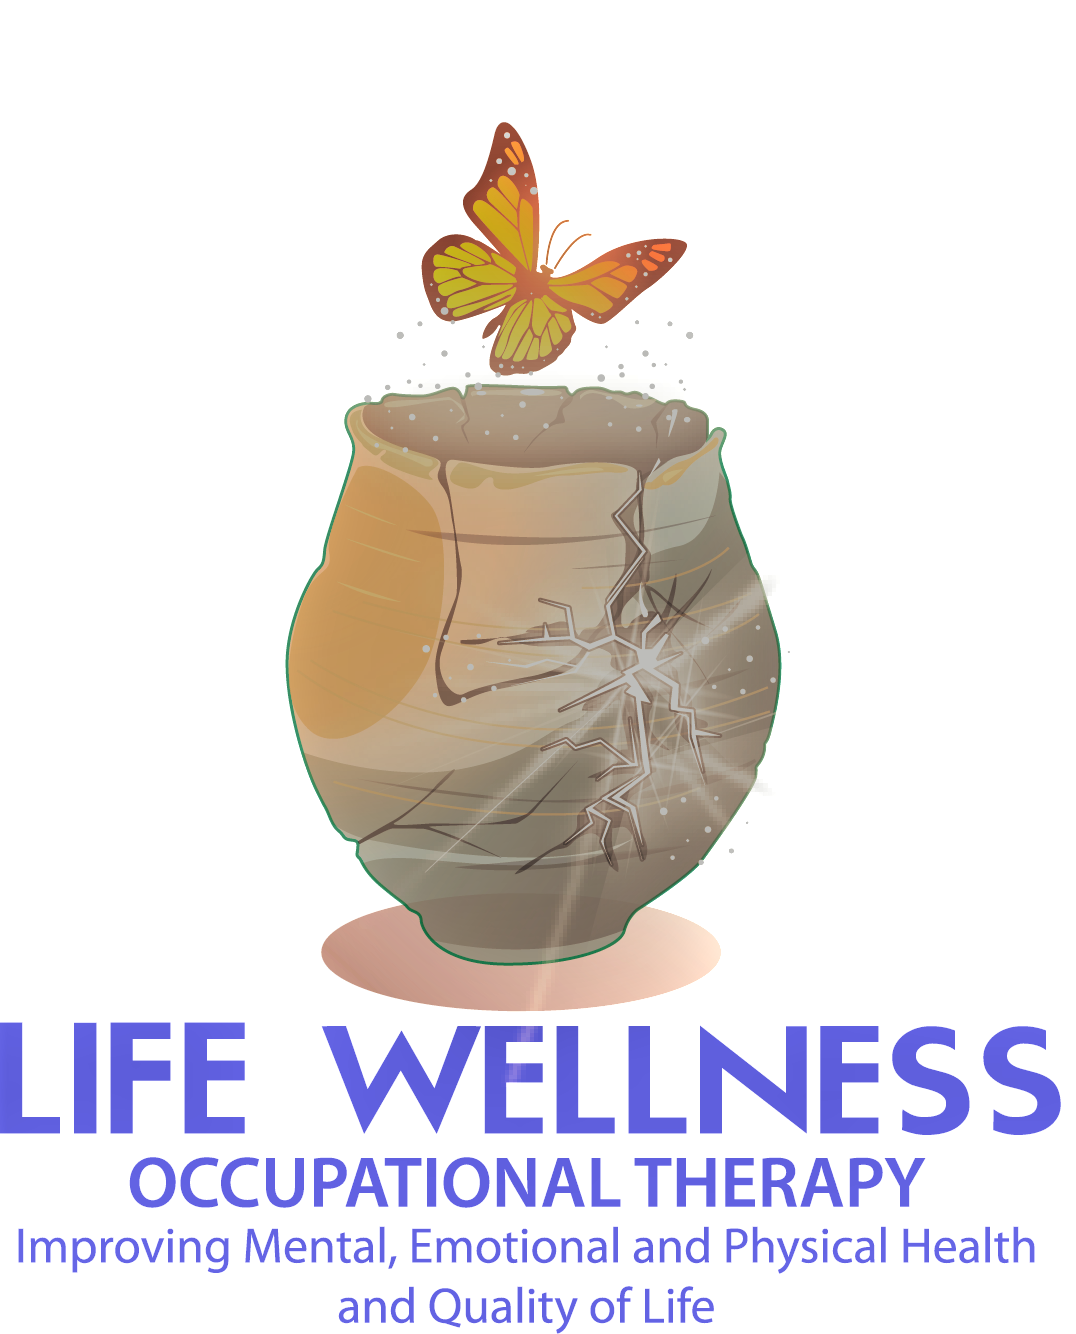 Life Wellness Occupational Therapy